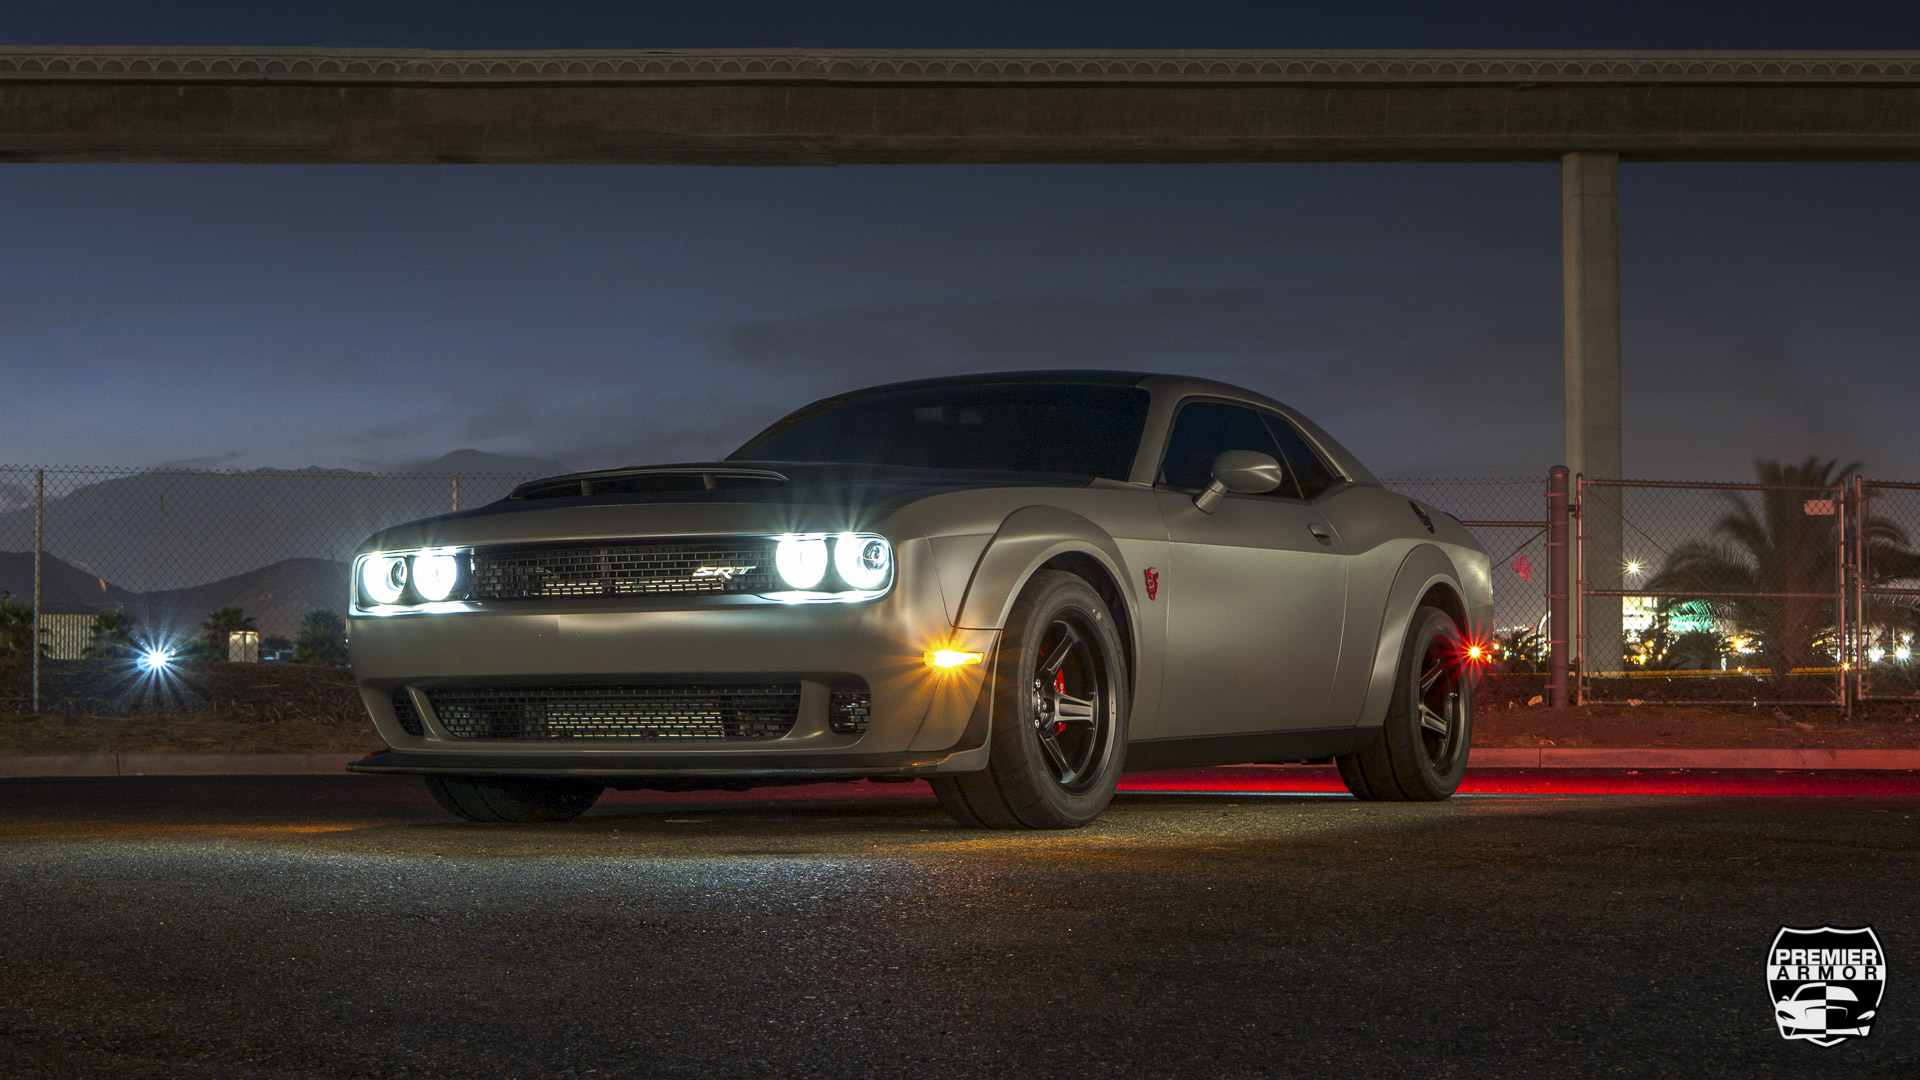 Premier Armor - Dodge SRT Hellcat Hero Shot